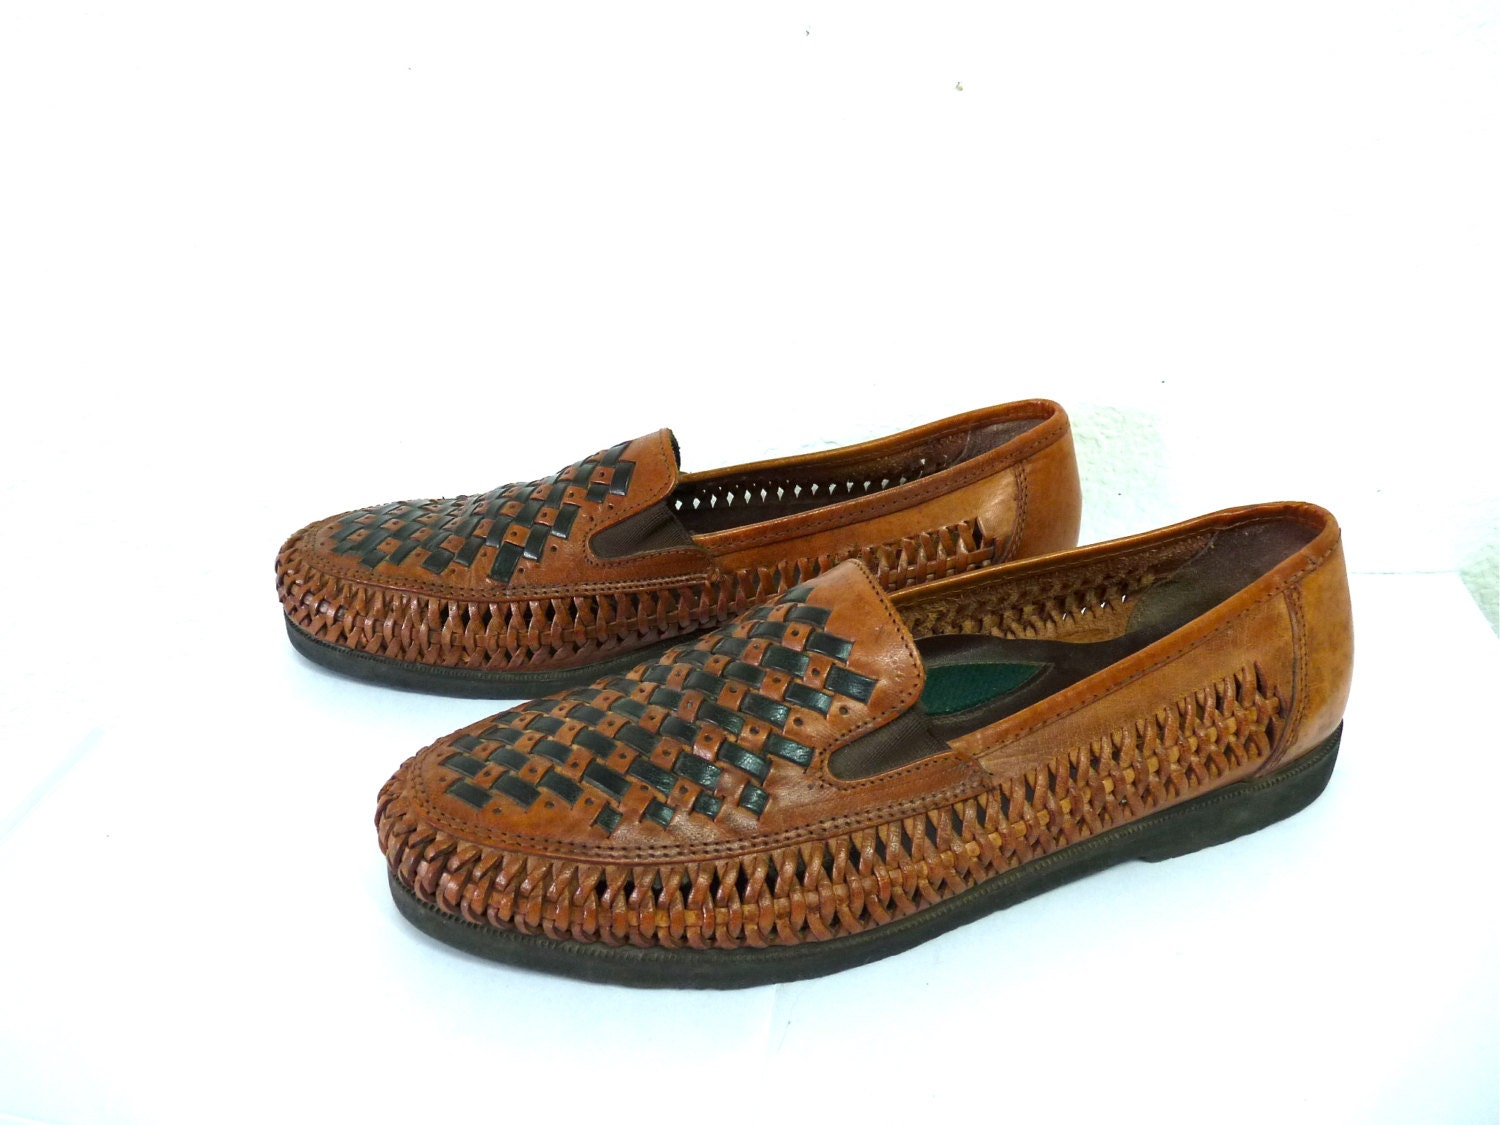 haband shoes search engine at search